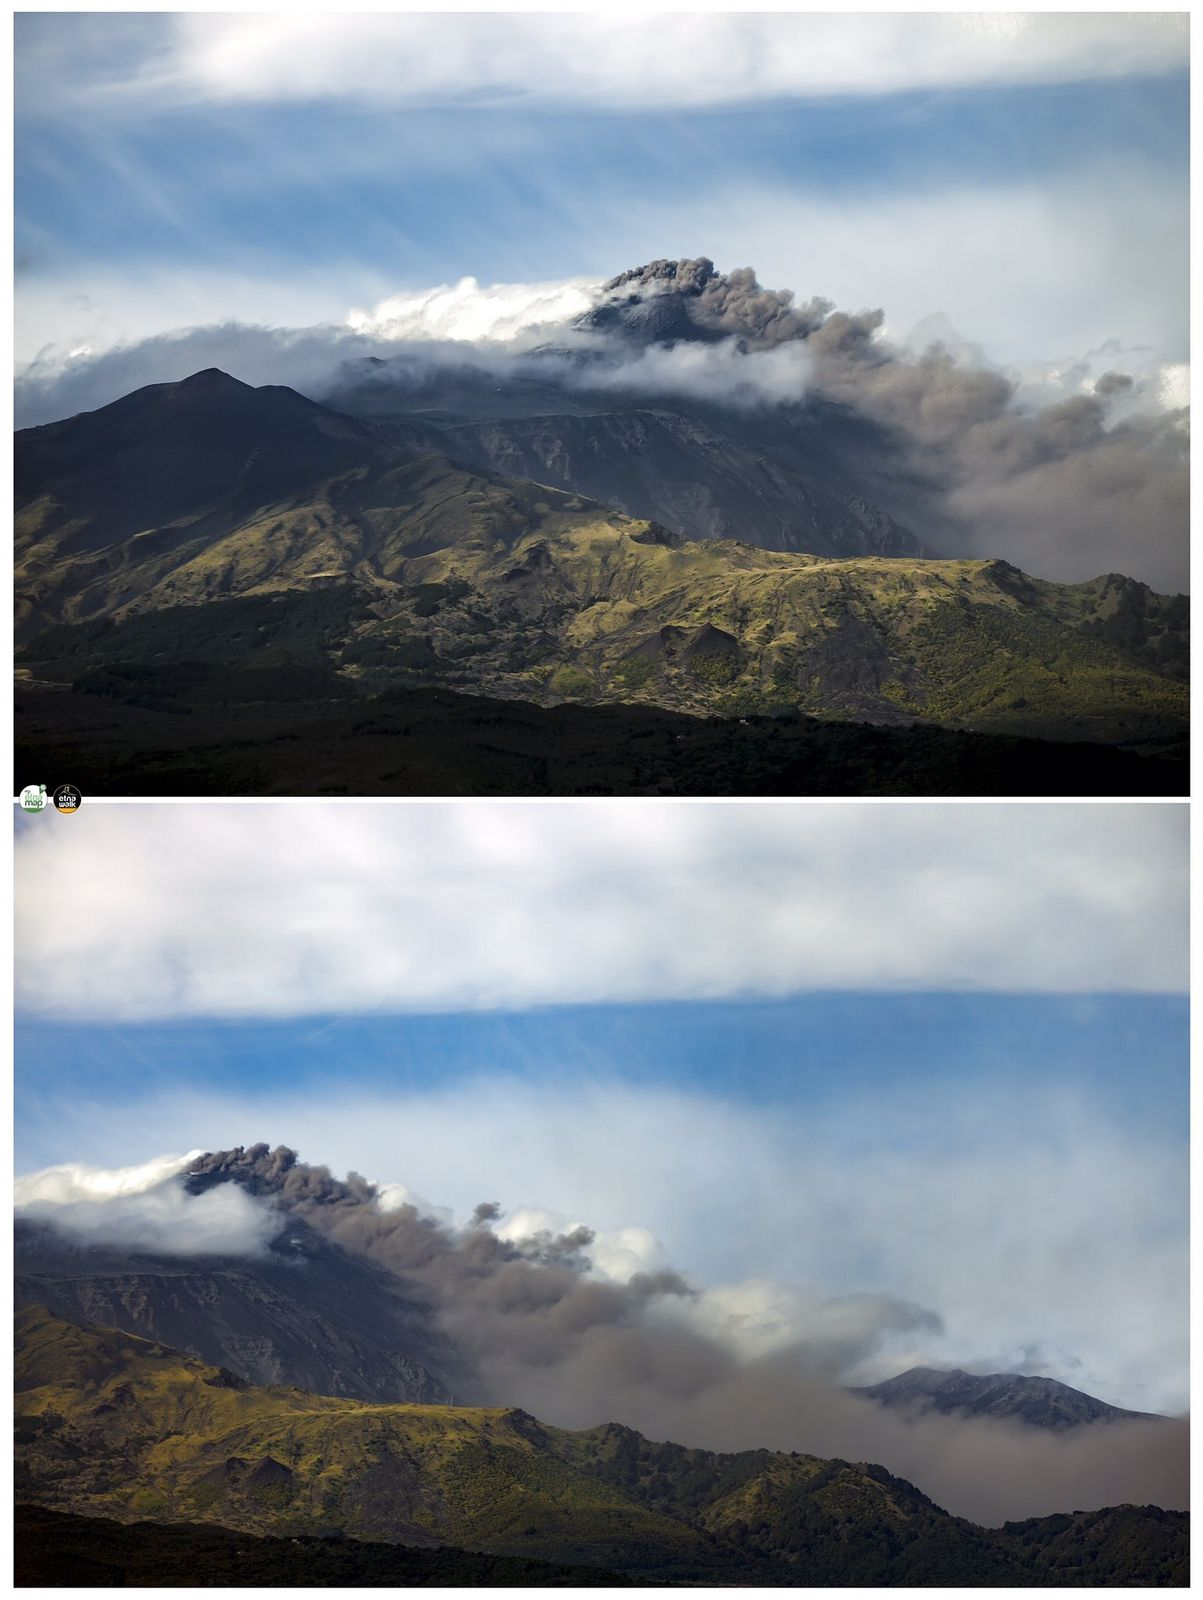 Etna - émission de cendres au NSEC - photo EtnaWalk